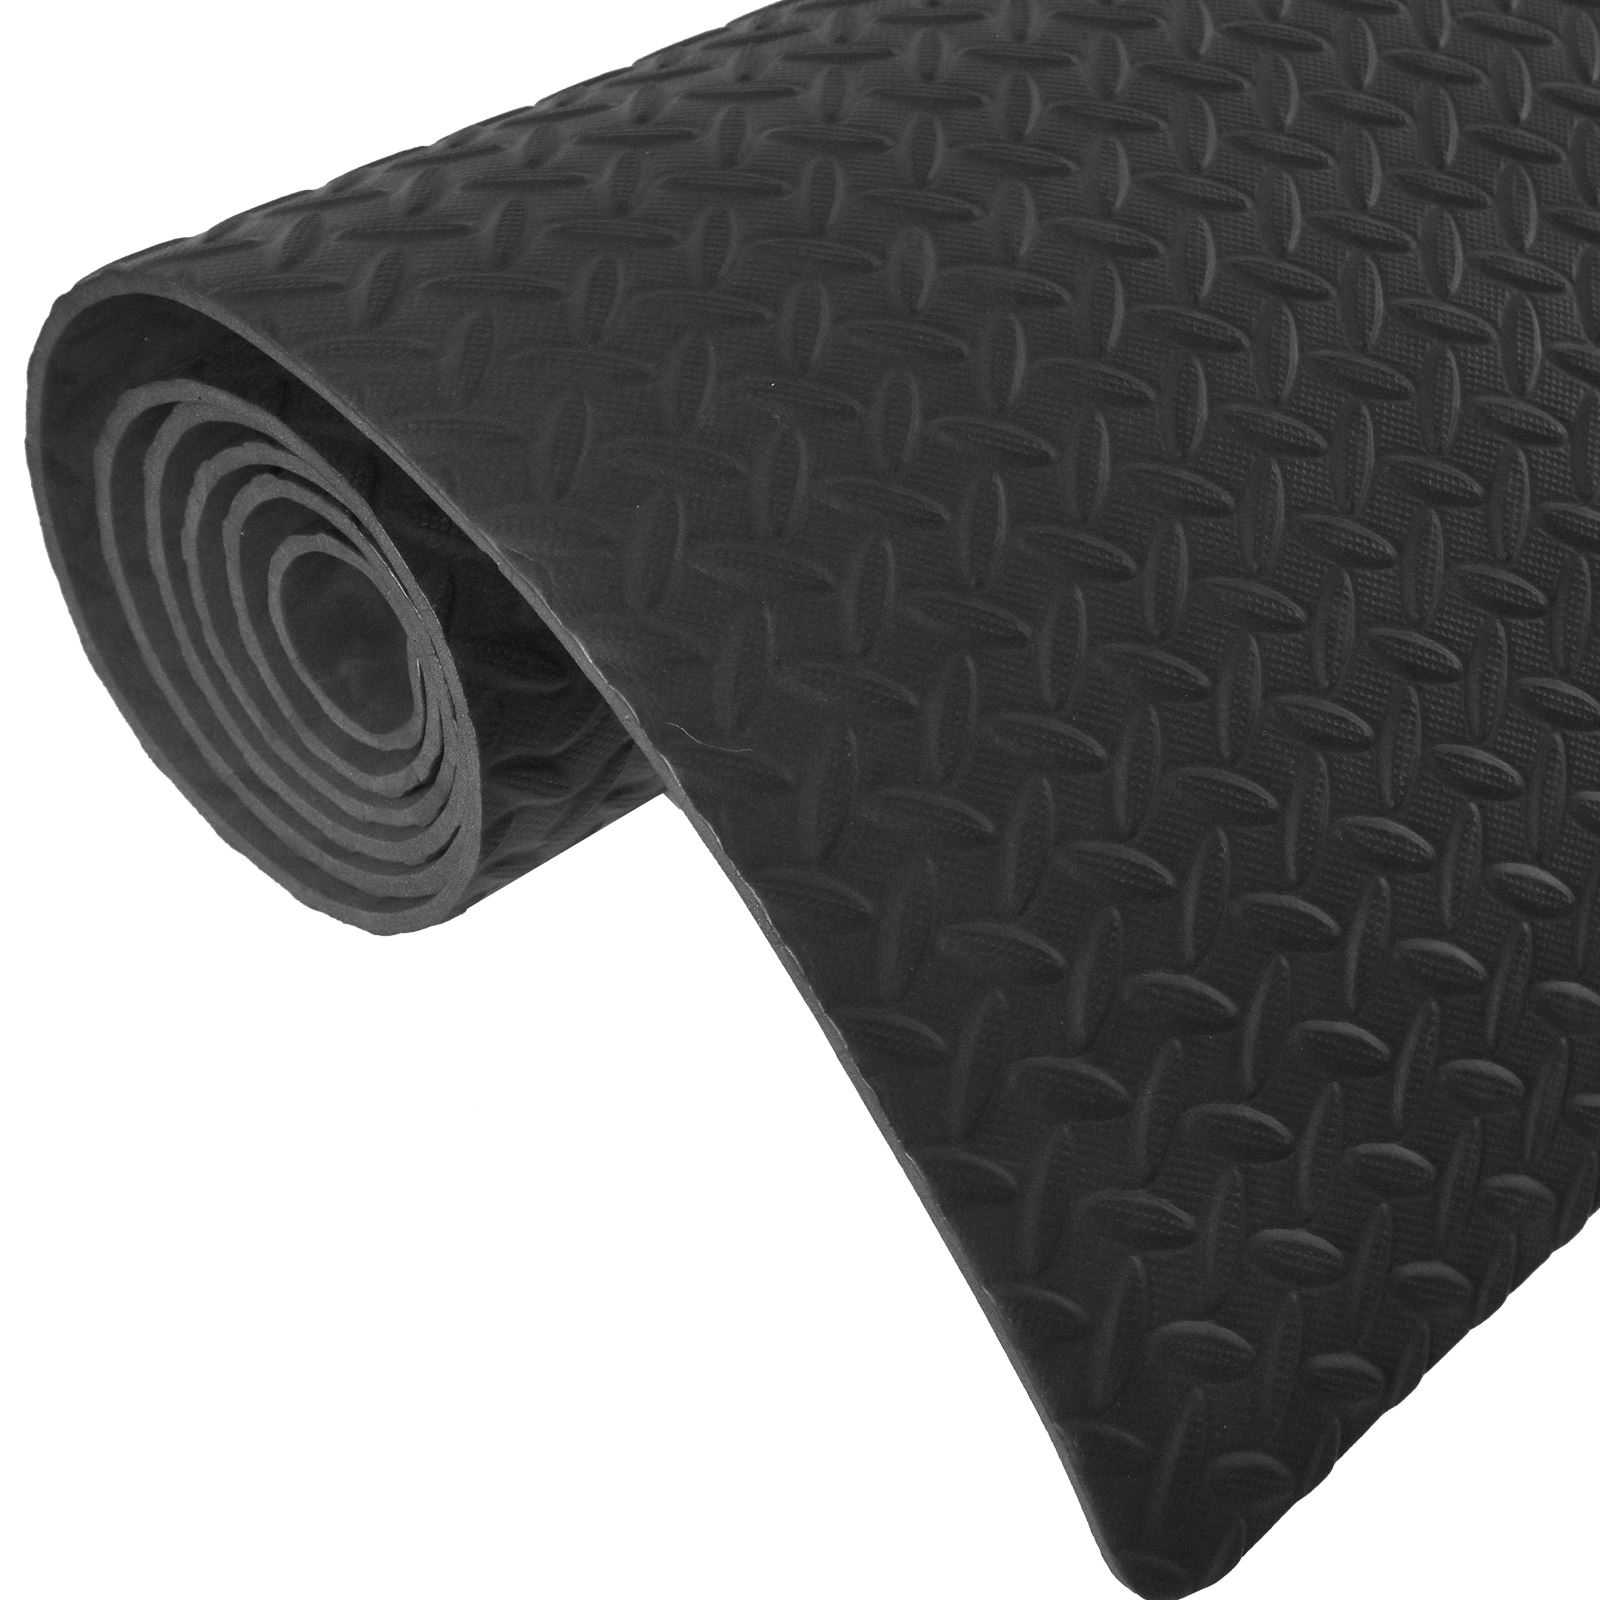 eva soft foam interlocking floor mats exercise gym kids play mat garage office ebay. Black Bedroom Furniture Sets. Home Design Ideas